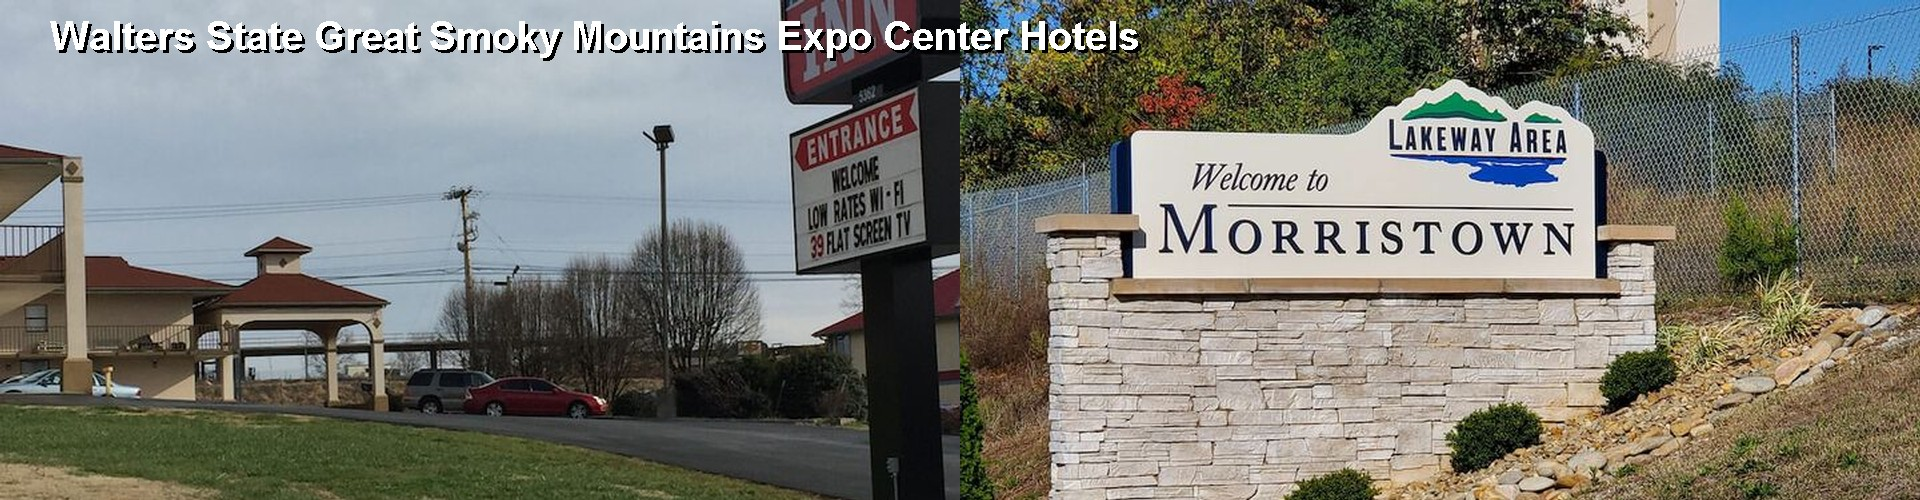 5 Best Hotels Near Walters State Great Smoky Mountains Expo Center